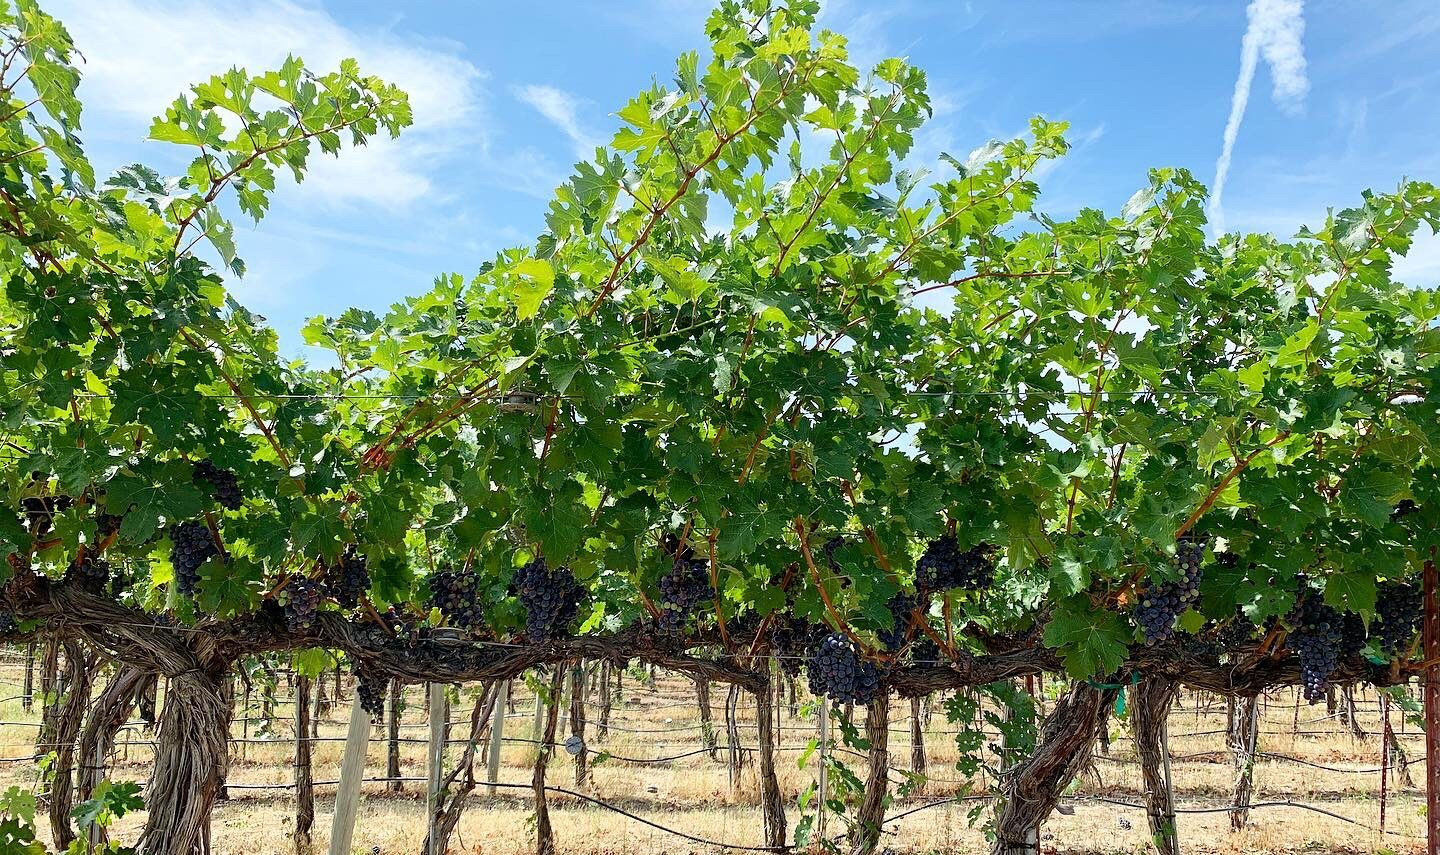 Sunshine hits green leaves on grape vines with ripe purple fruit hanging below. The ground below is tan and the sky above is bright blue.